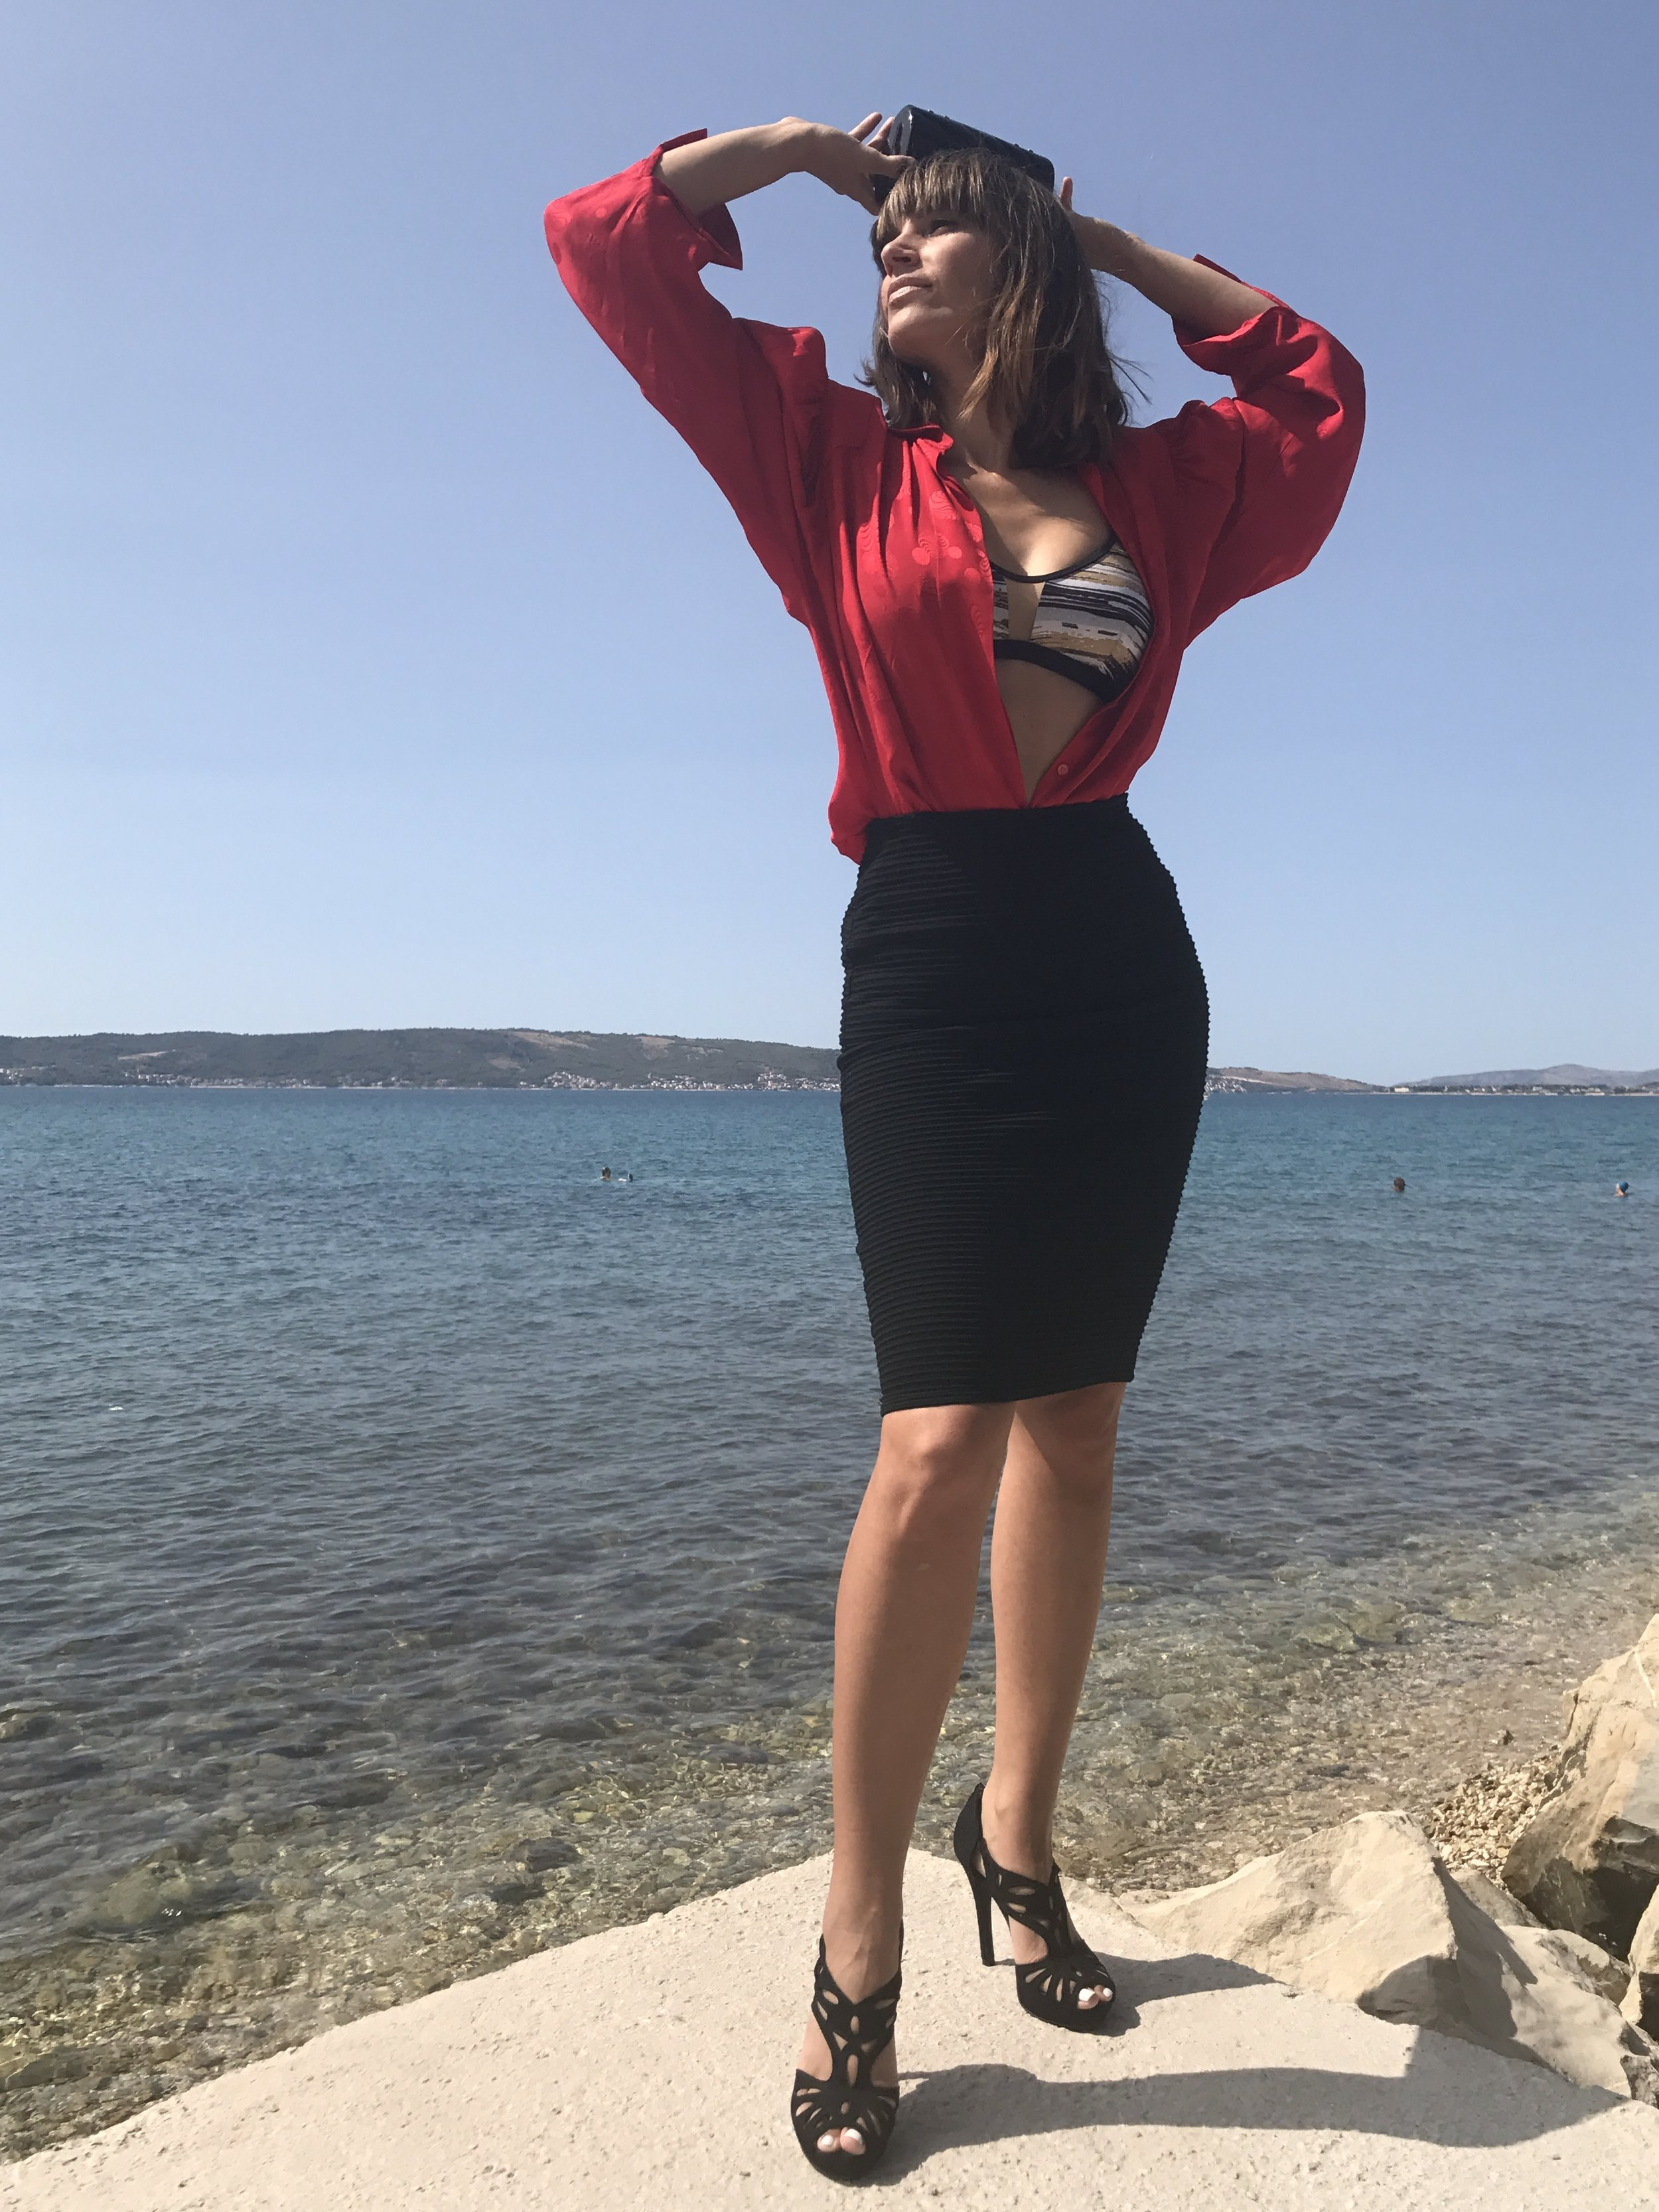 Black pencil skirt, black and golden bikini top and red blouse tucked in the skirt open in front, black high heels, black clutch